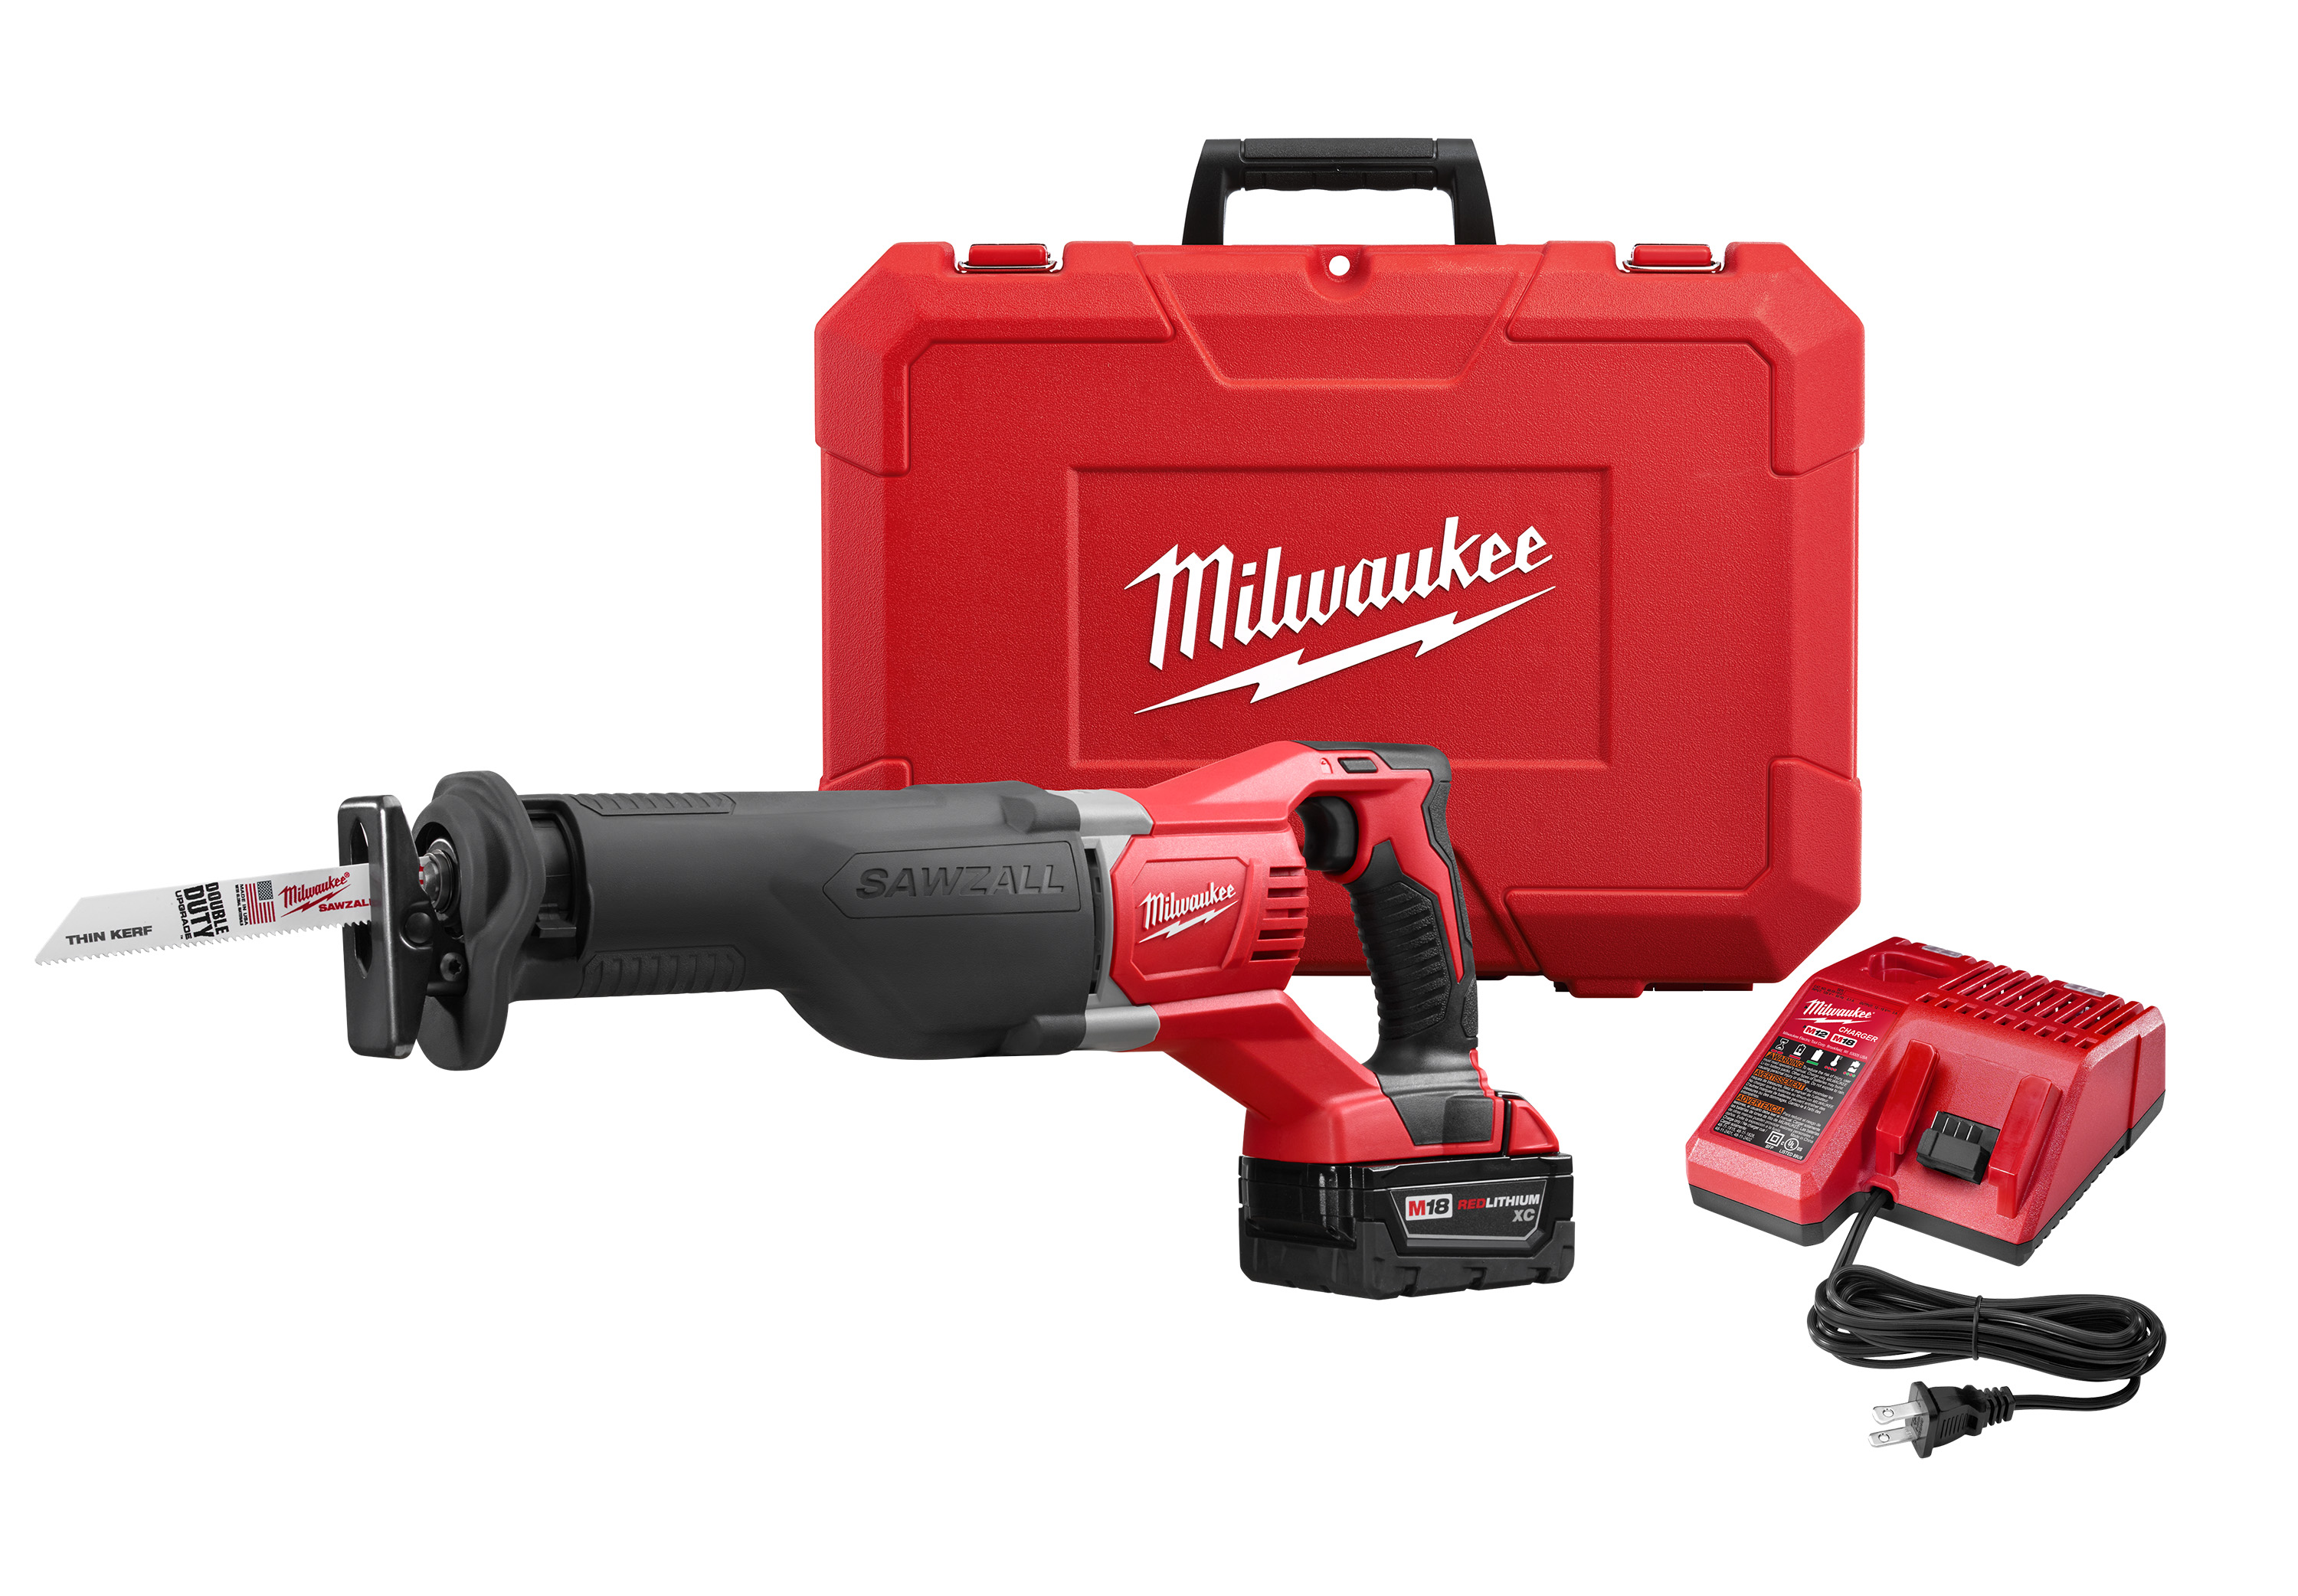 Milwaukee® M18™ SAWZALL™ 2621-20 Cordless Reciprocating Saw, 1-1/8 in L Stroke, 3000 spm, In-Line Cut, 18 VDC, 18 in OAL